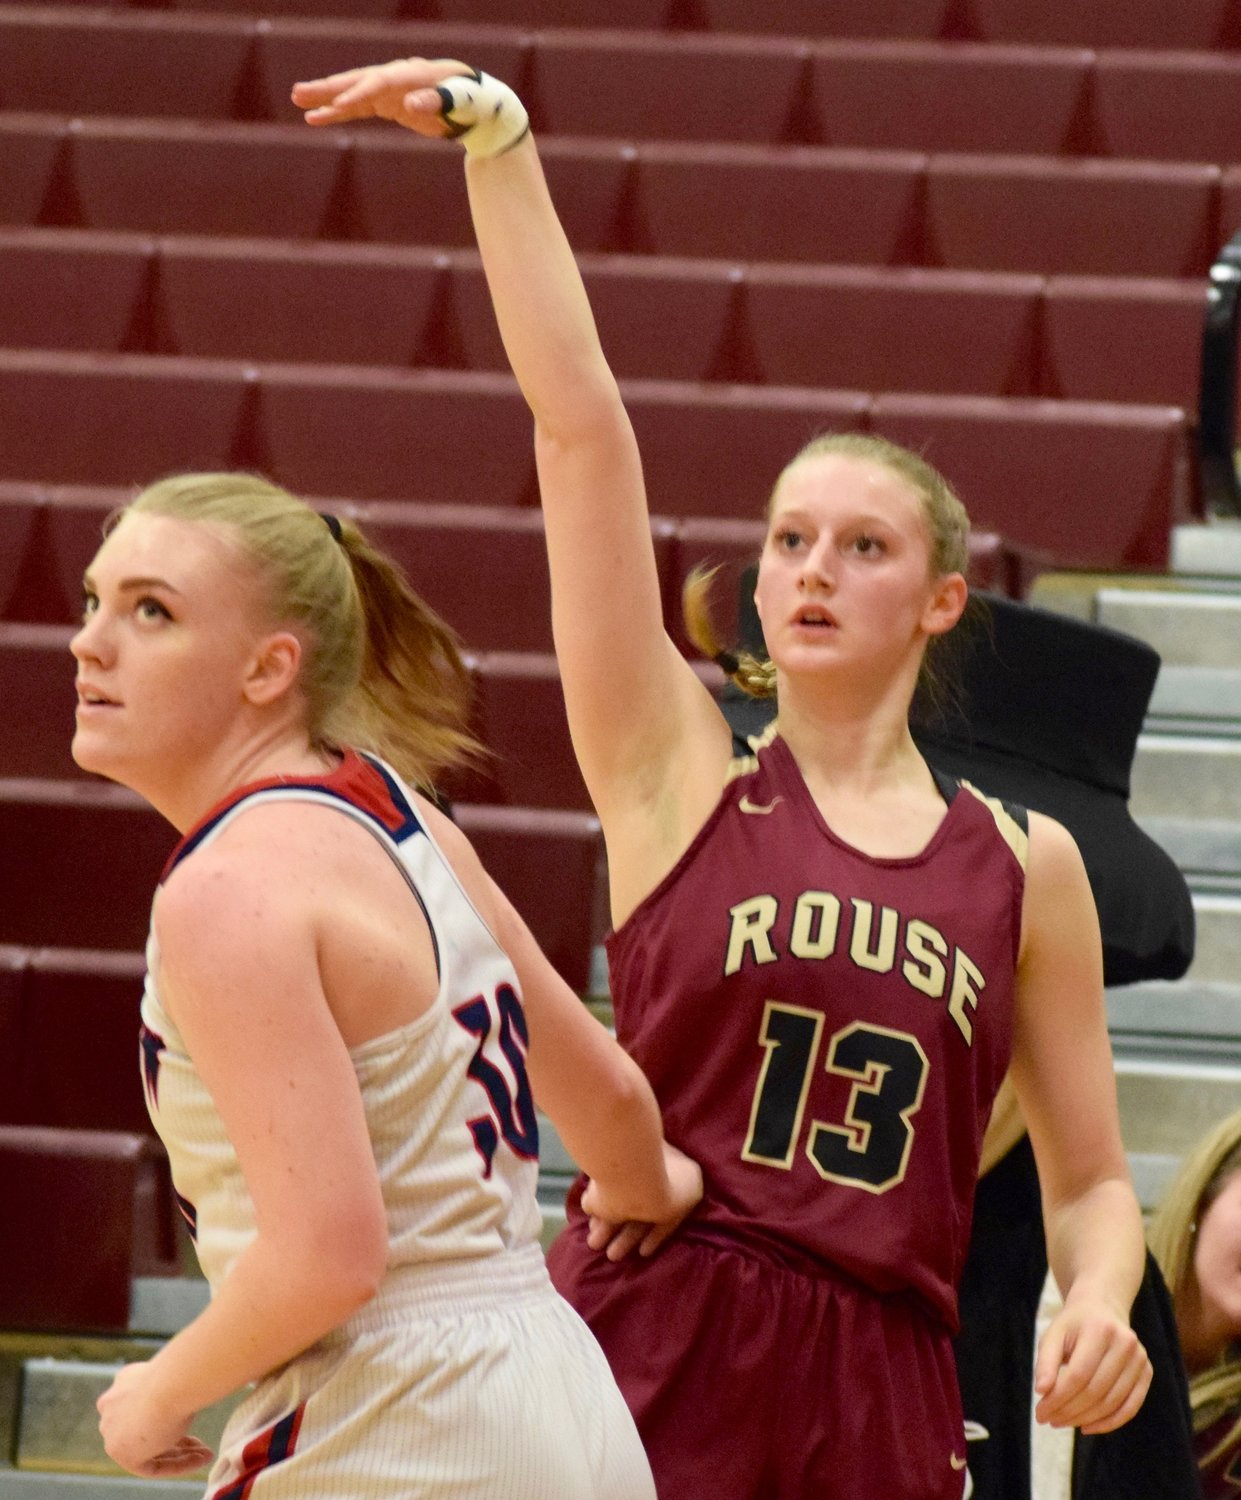 Chloe Austin scored six points and Rouse lost to East View 35-30 in the first round of the playoffs Monday night at Round Rock High School.